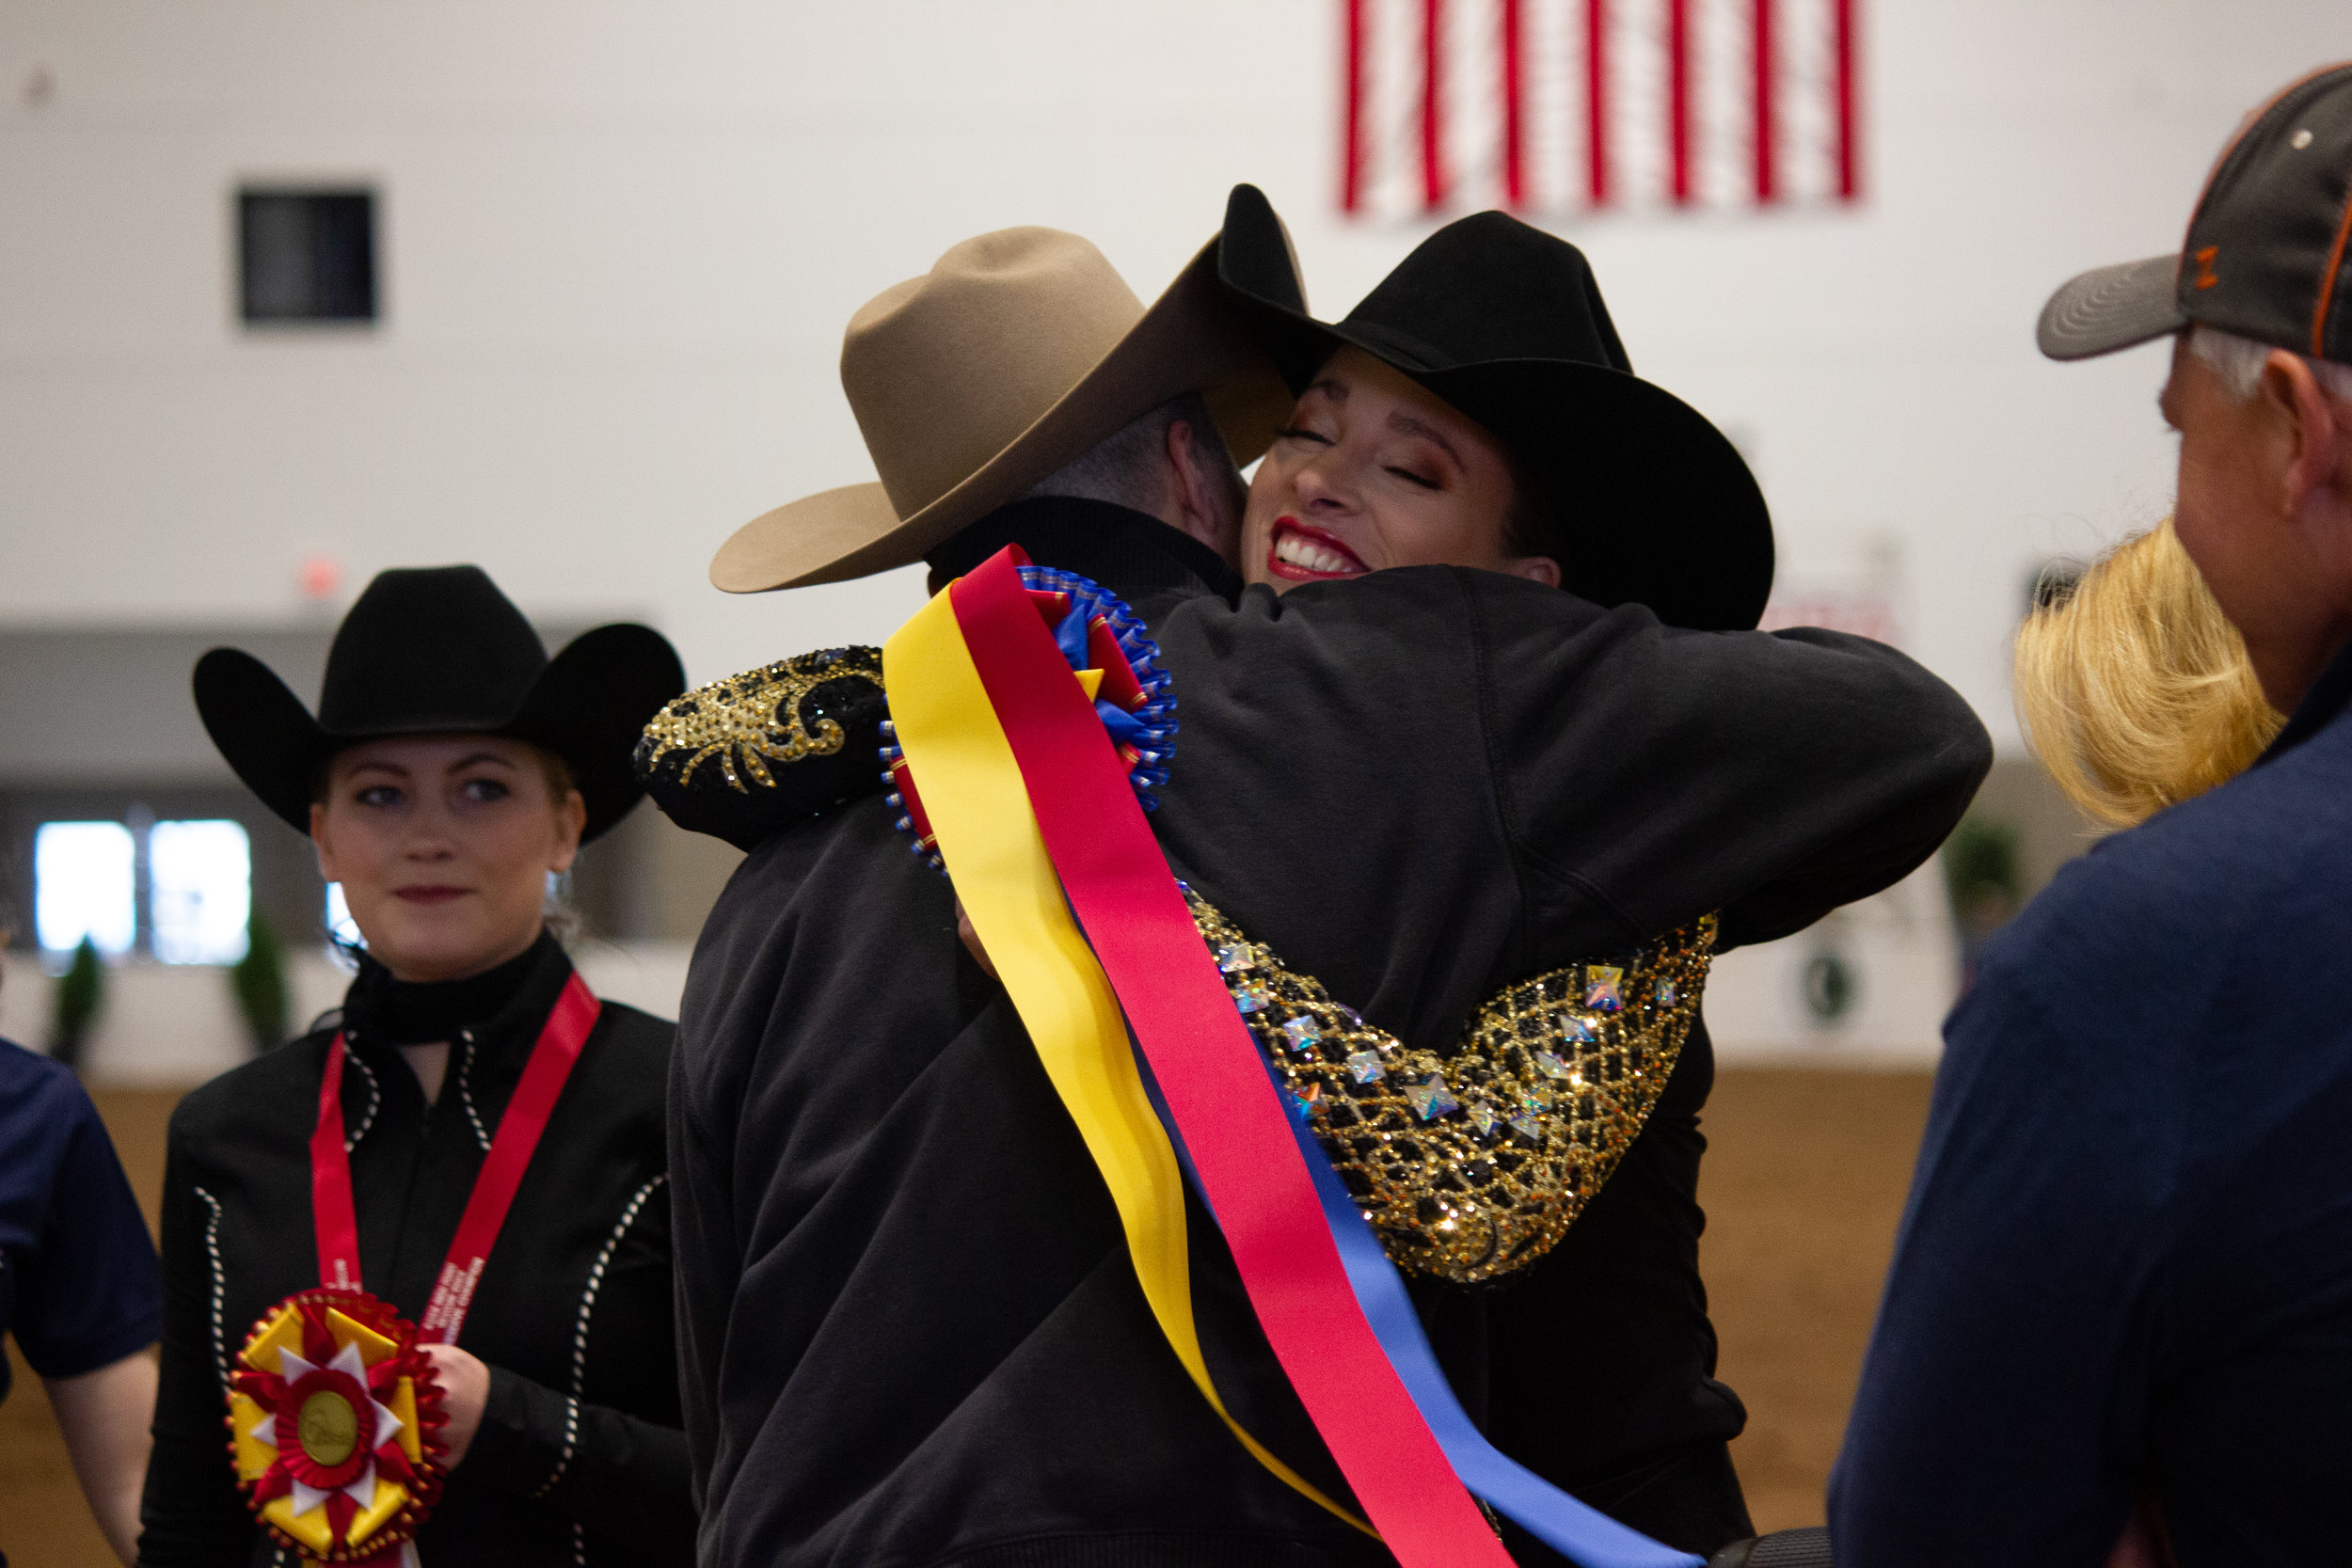 Julia Roshelli after winning the AQHA High Point Rider title, she receives congratulations from   her coach Spencer Zimmerman. Photo by Ellyn Narodowy